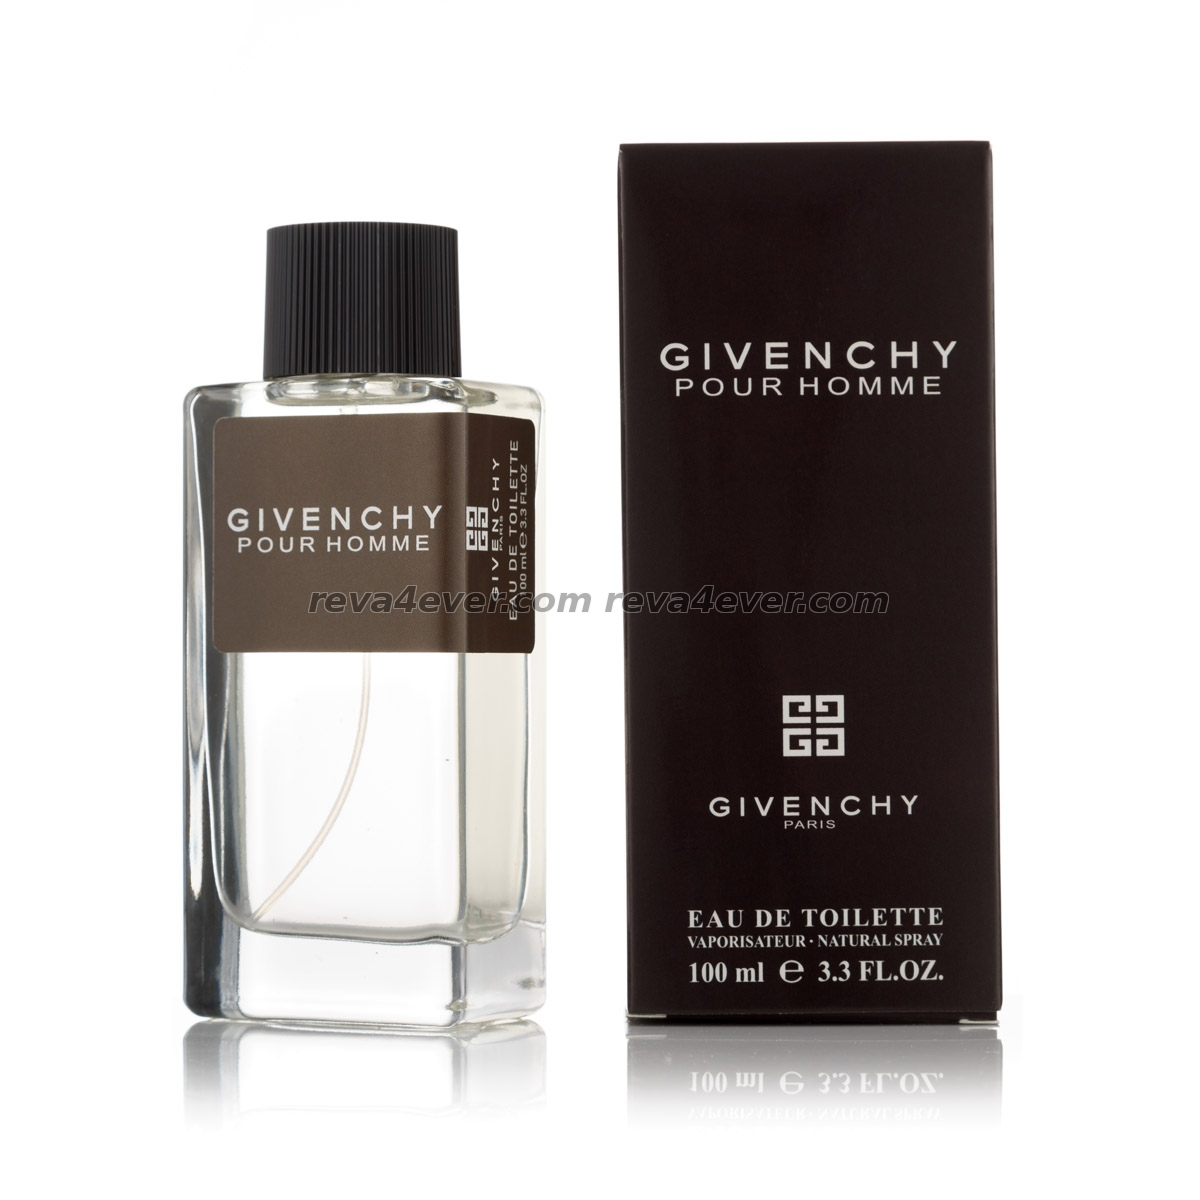 Givenchy Pour Homme edp 100ml Imperatrice style